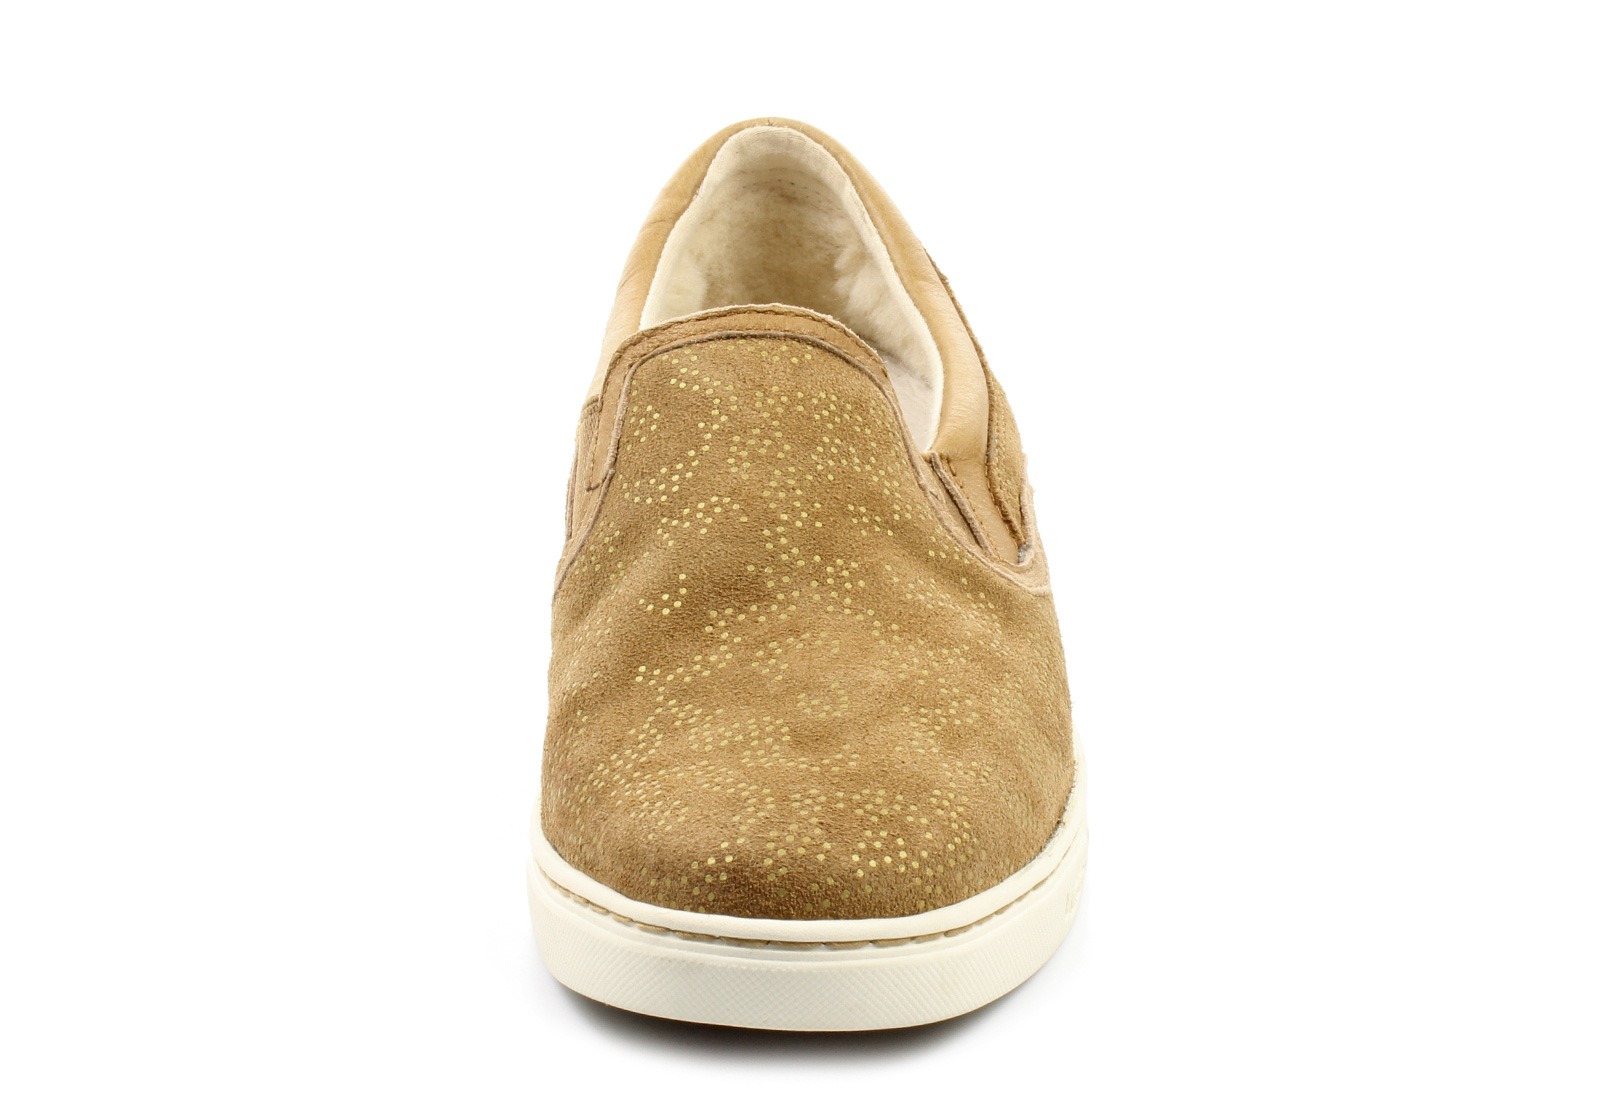 Ugg Boots Metallic Vans Shoes Outlet Store | Division of ...